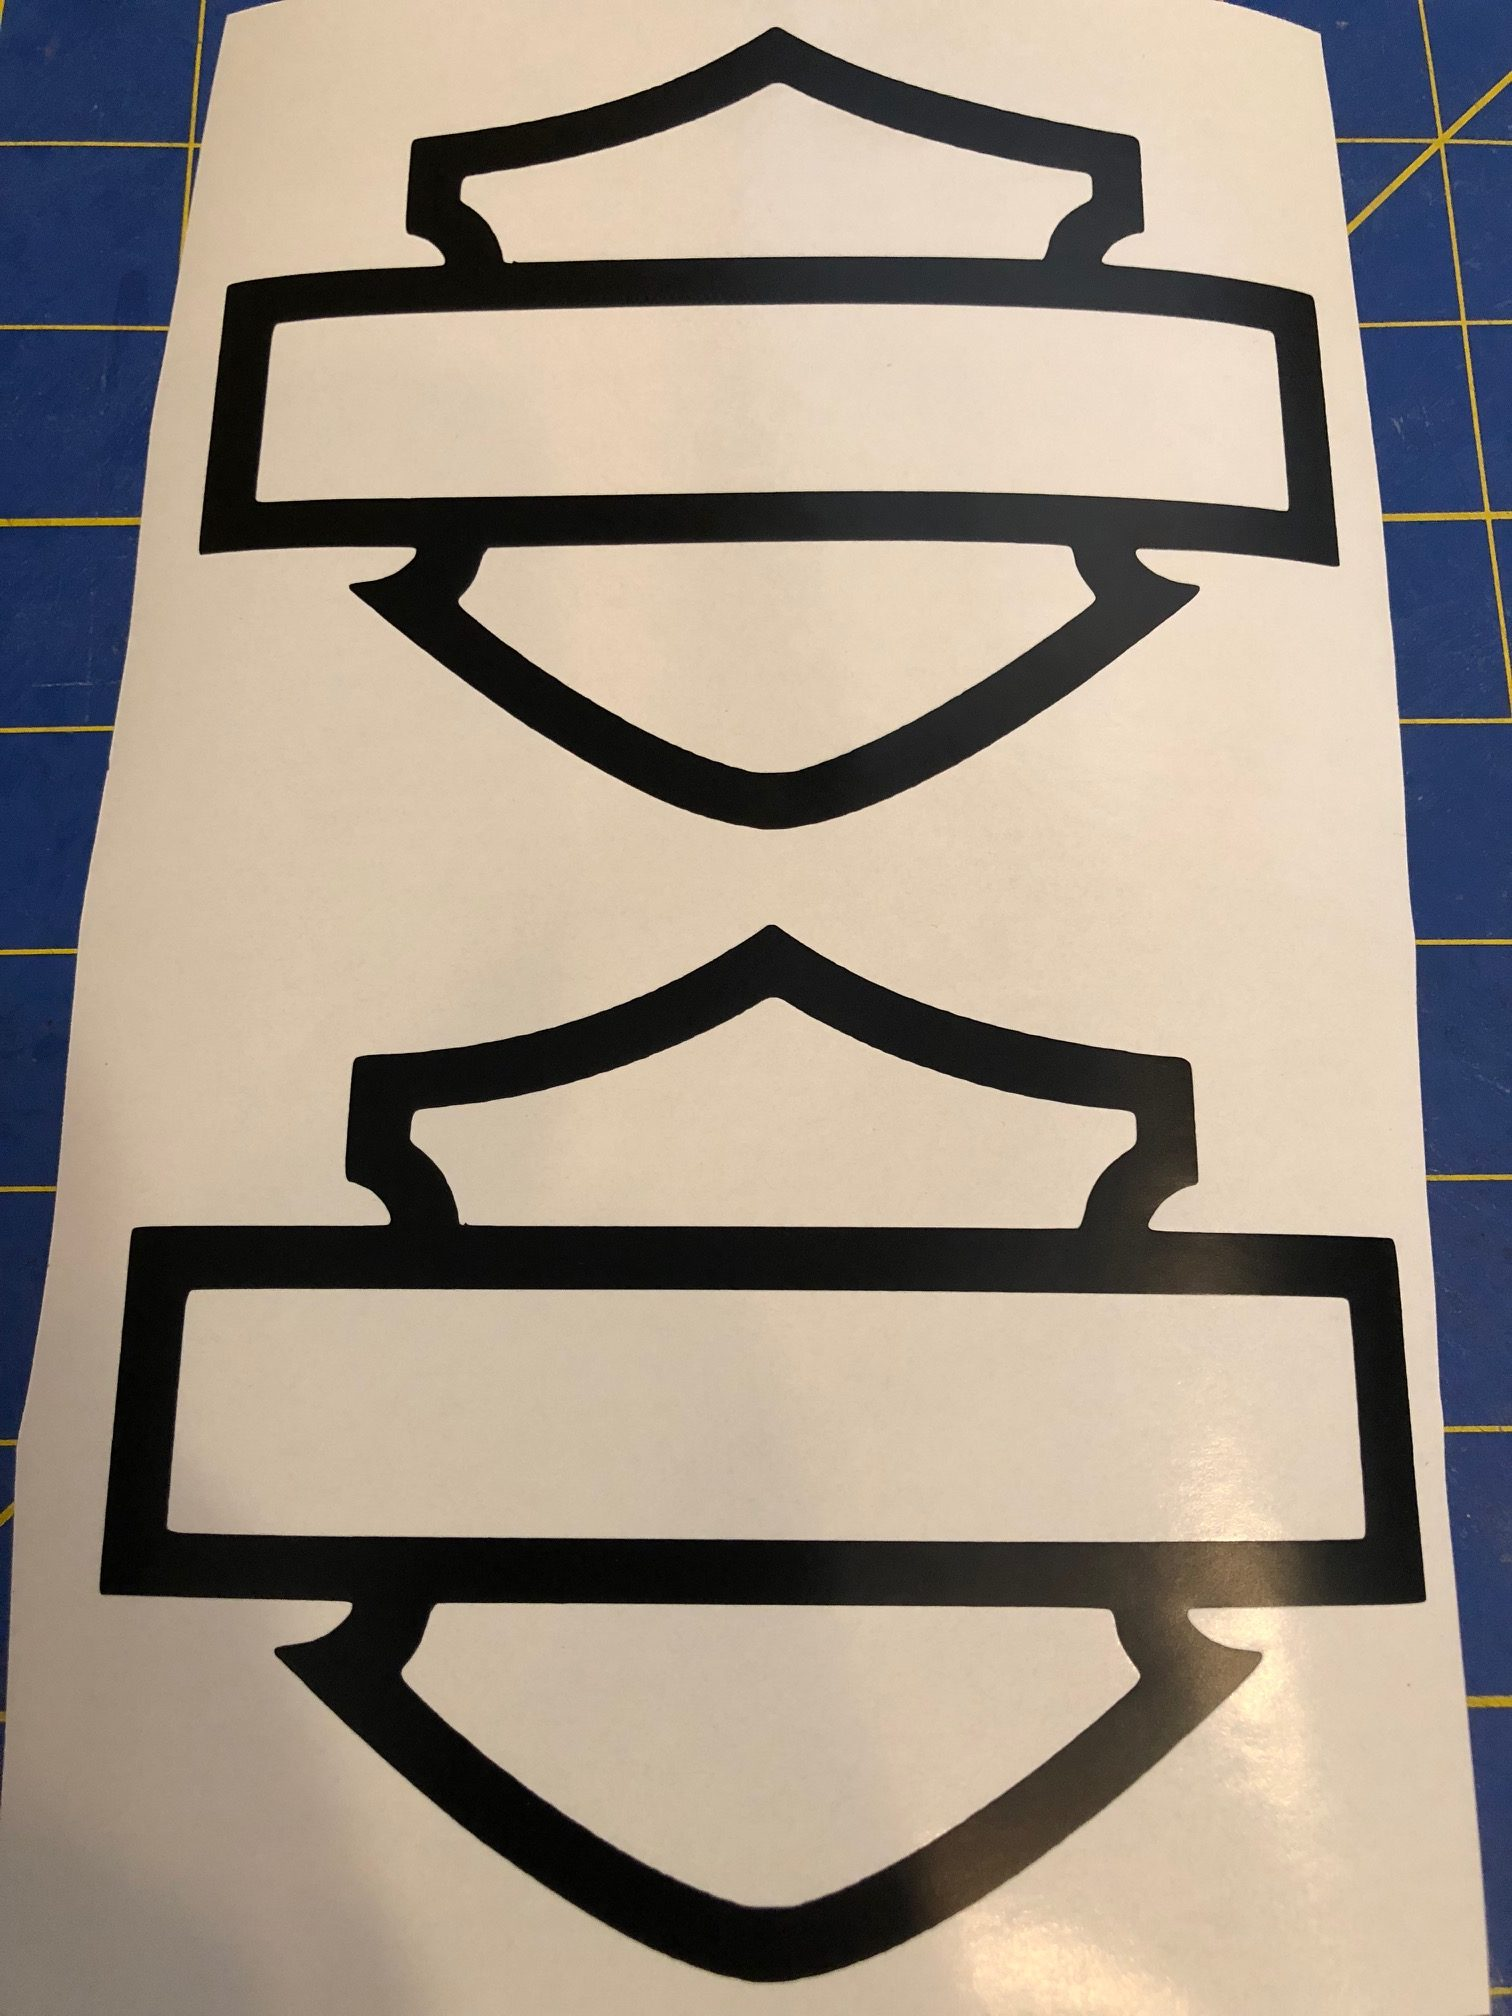 Harley shield outline tank decal set